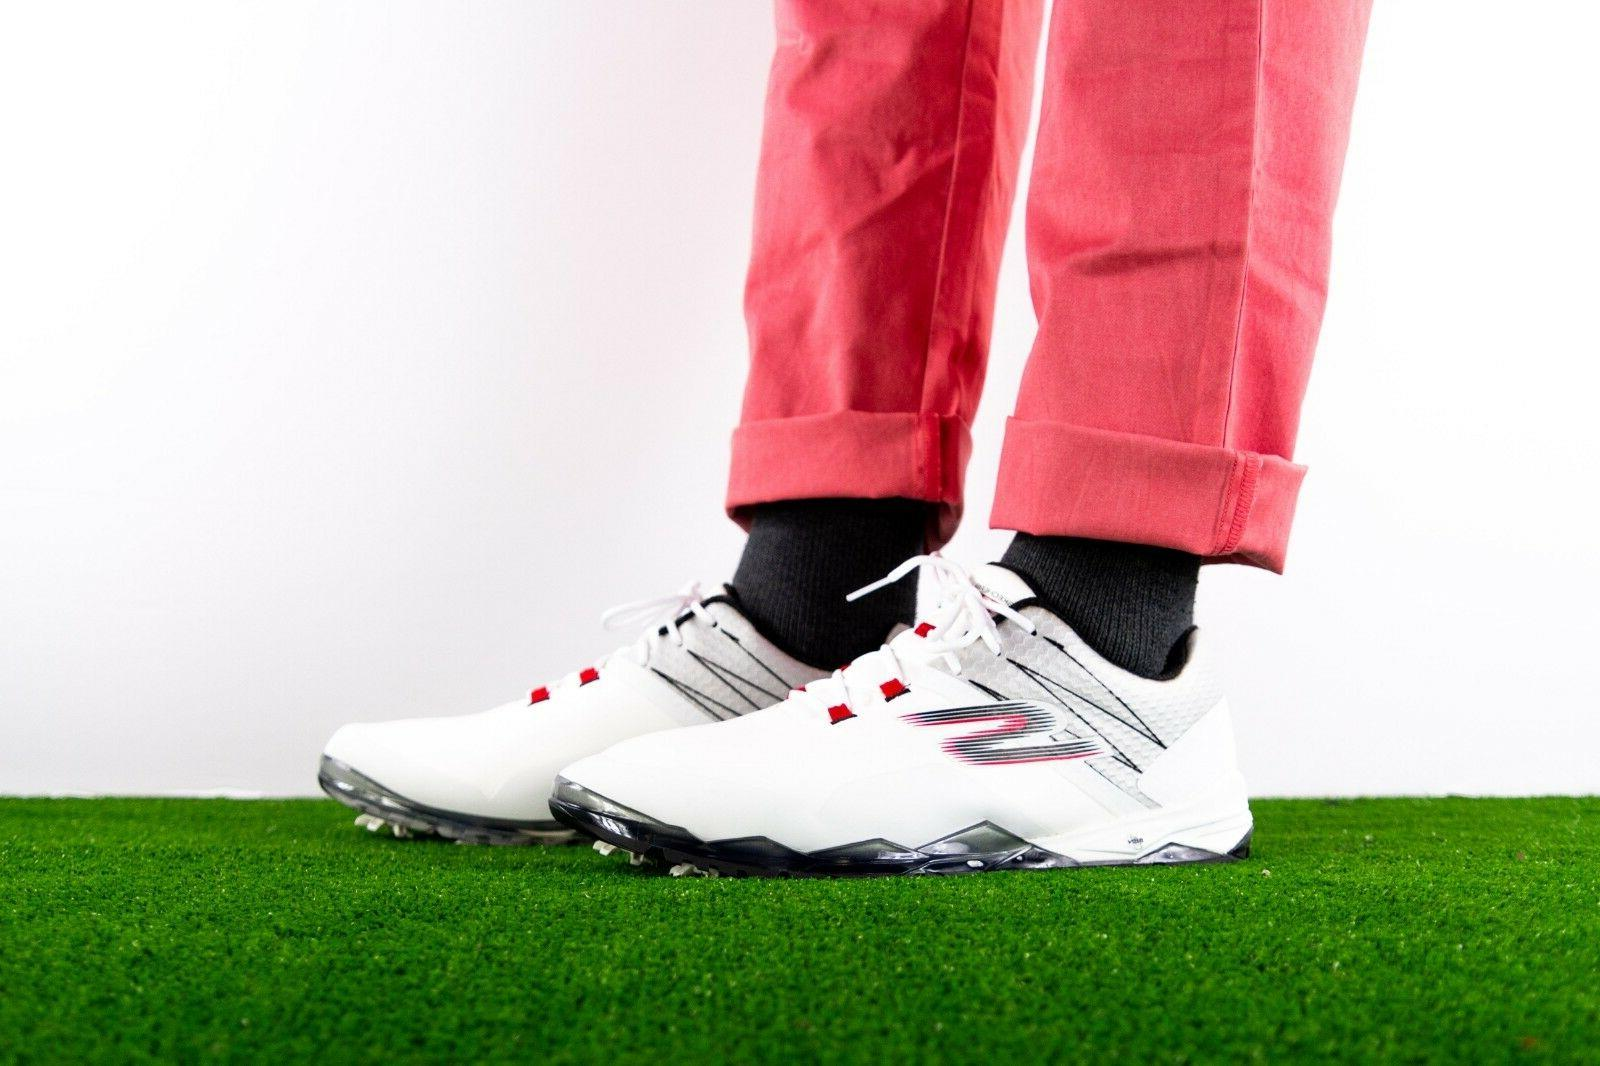 NEW Skechers Mens Go Golf Focus Waterproof Golf Shoes White